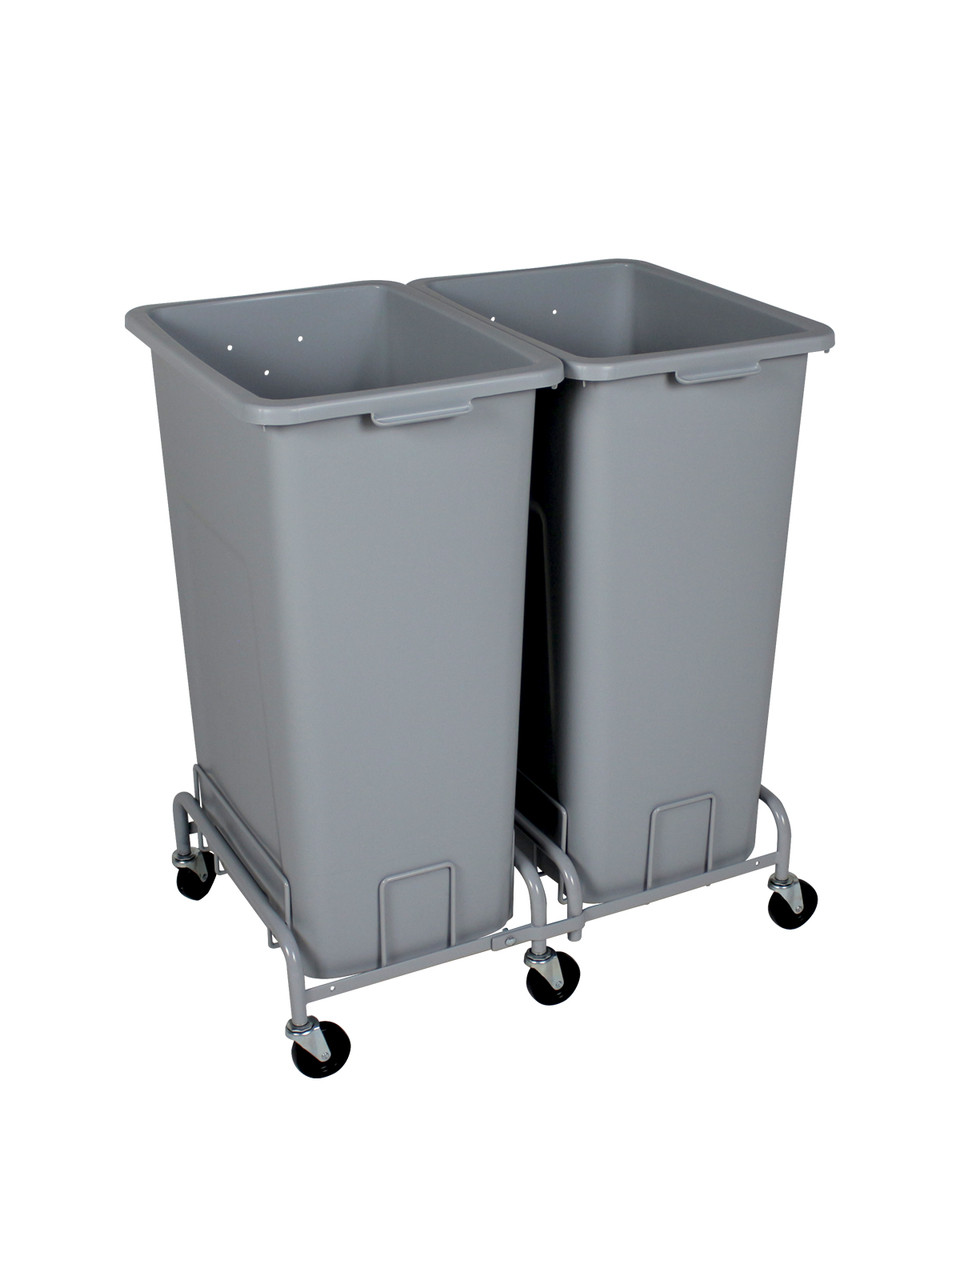 48 Gallon Plastic Extra Large Trash Cans with Wheels Combo (4 Color Choices)